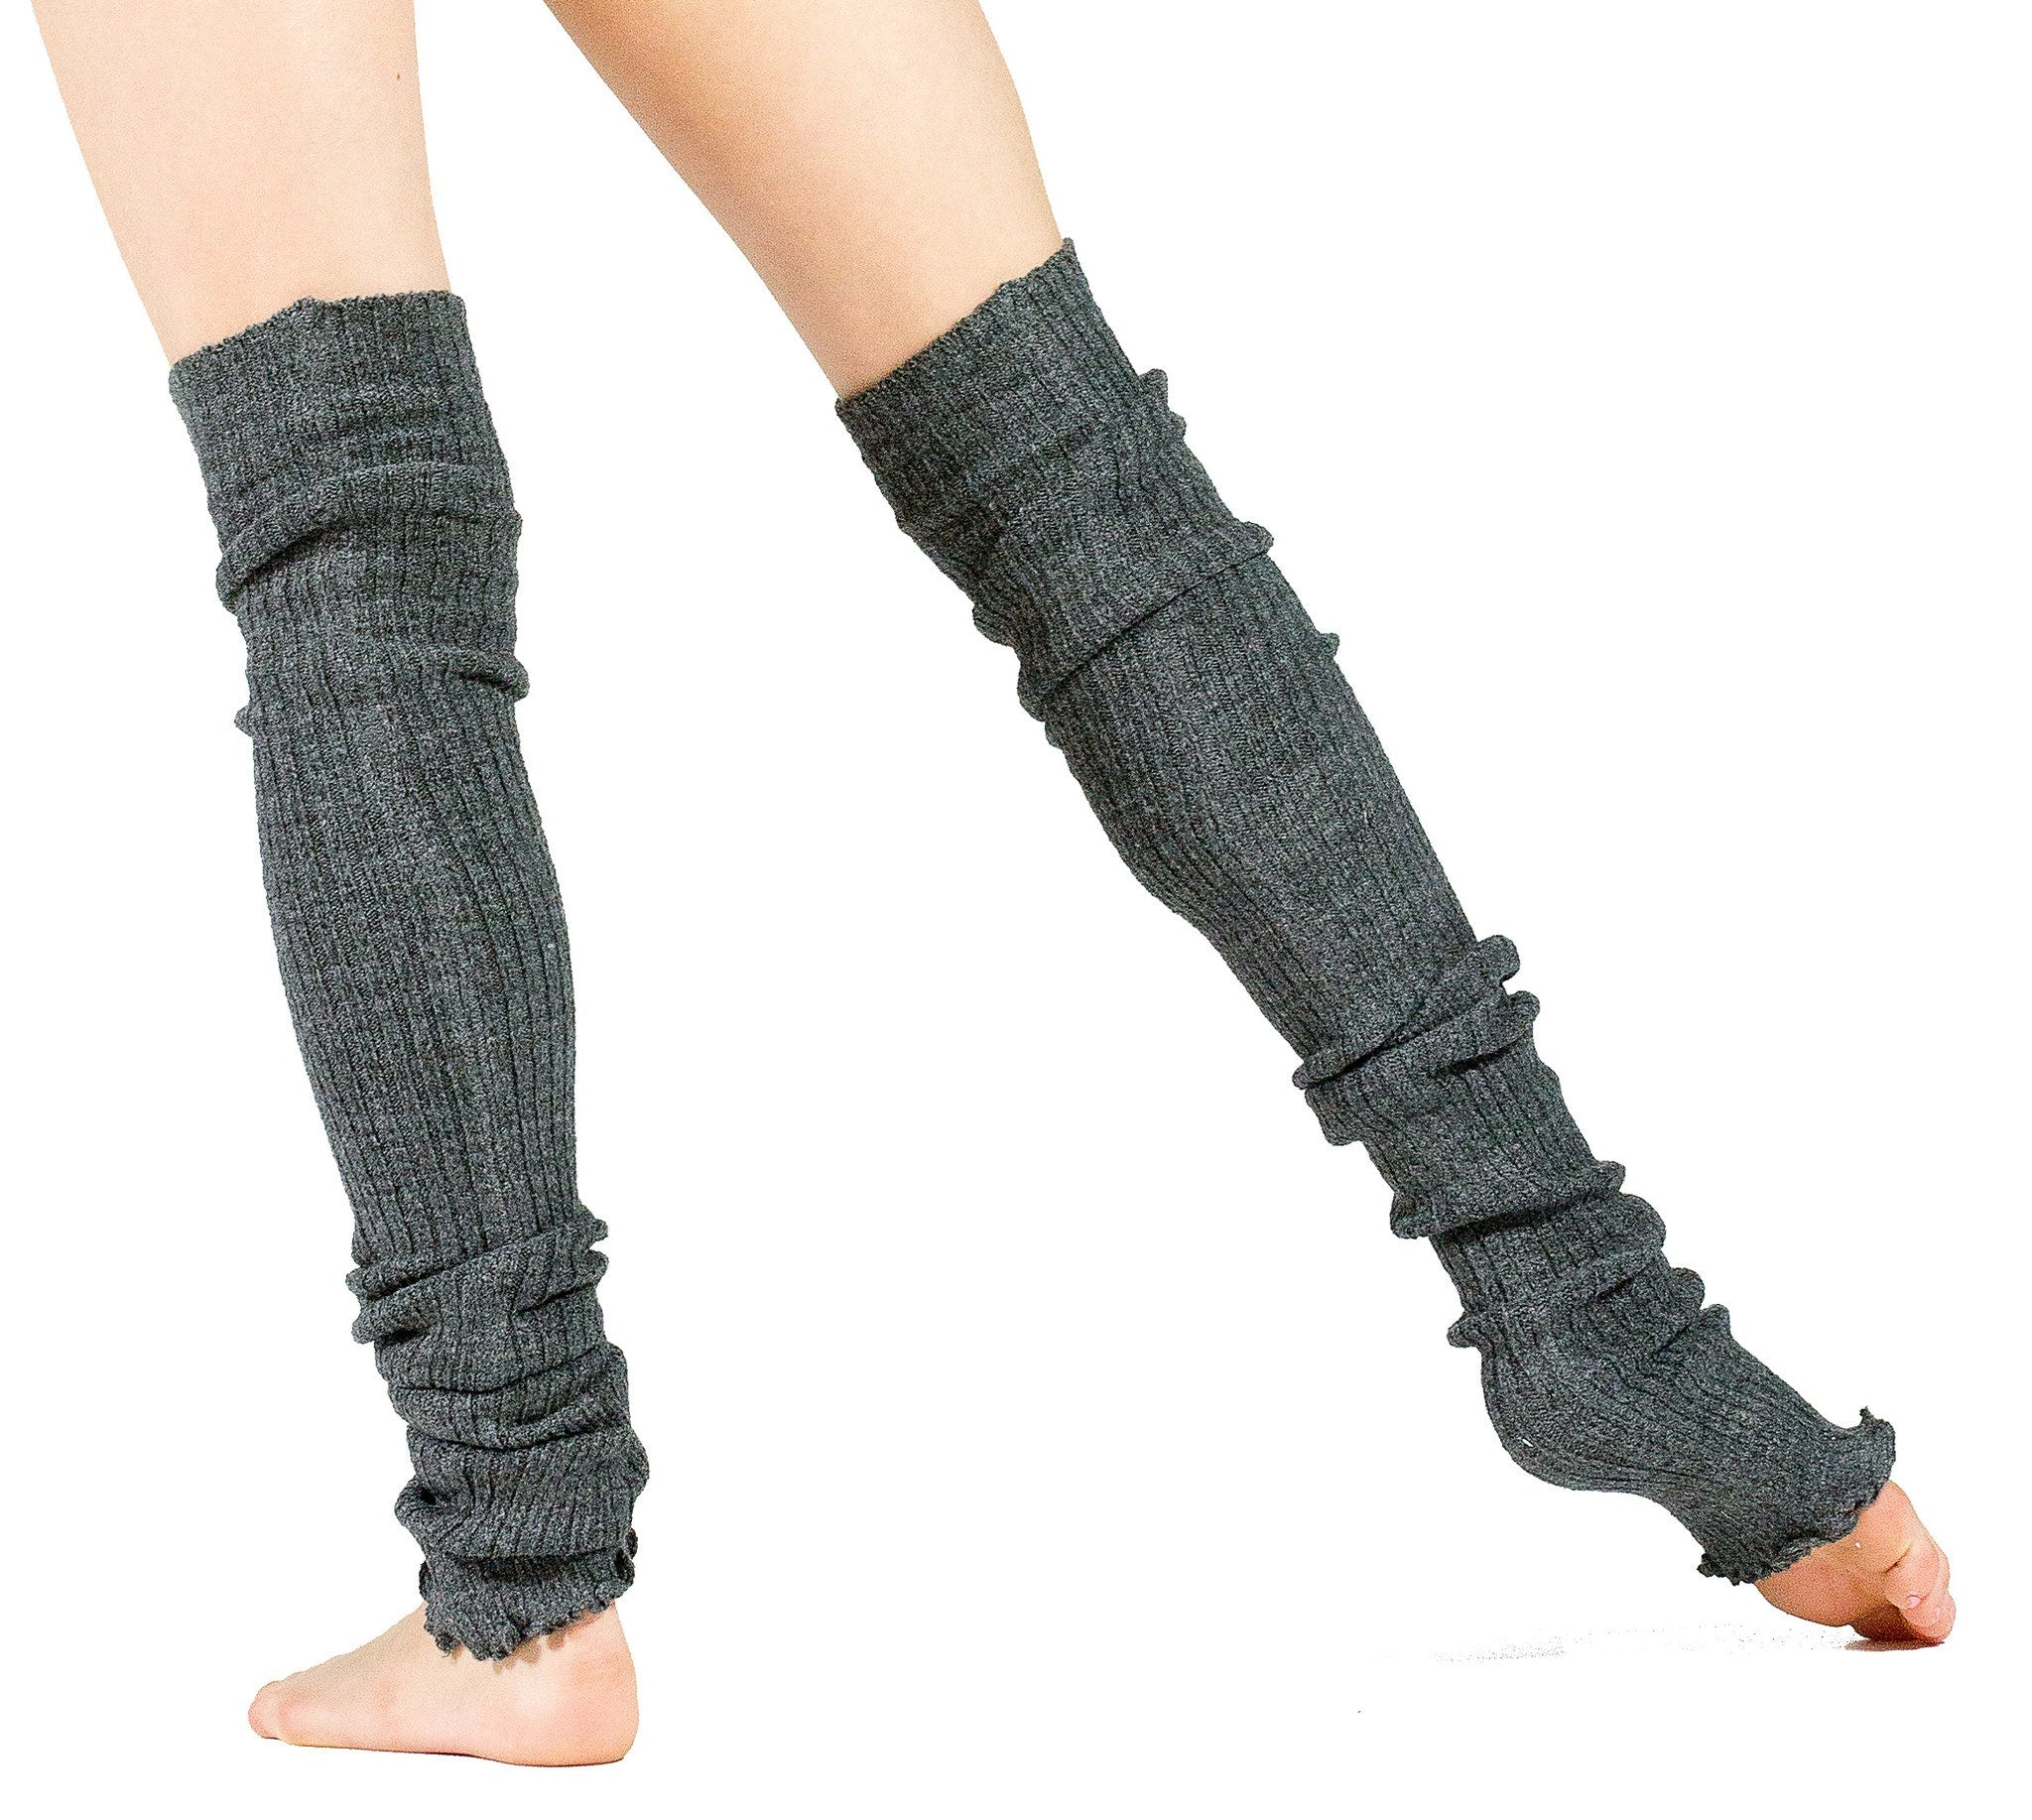 Leg Warmers Thigh High Stretch Knit Ribbed 28 Inch Leg Warmers High Quality KD dance Made In USA @KDdanceNewYork #MadeInUSA - 7